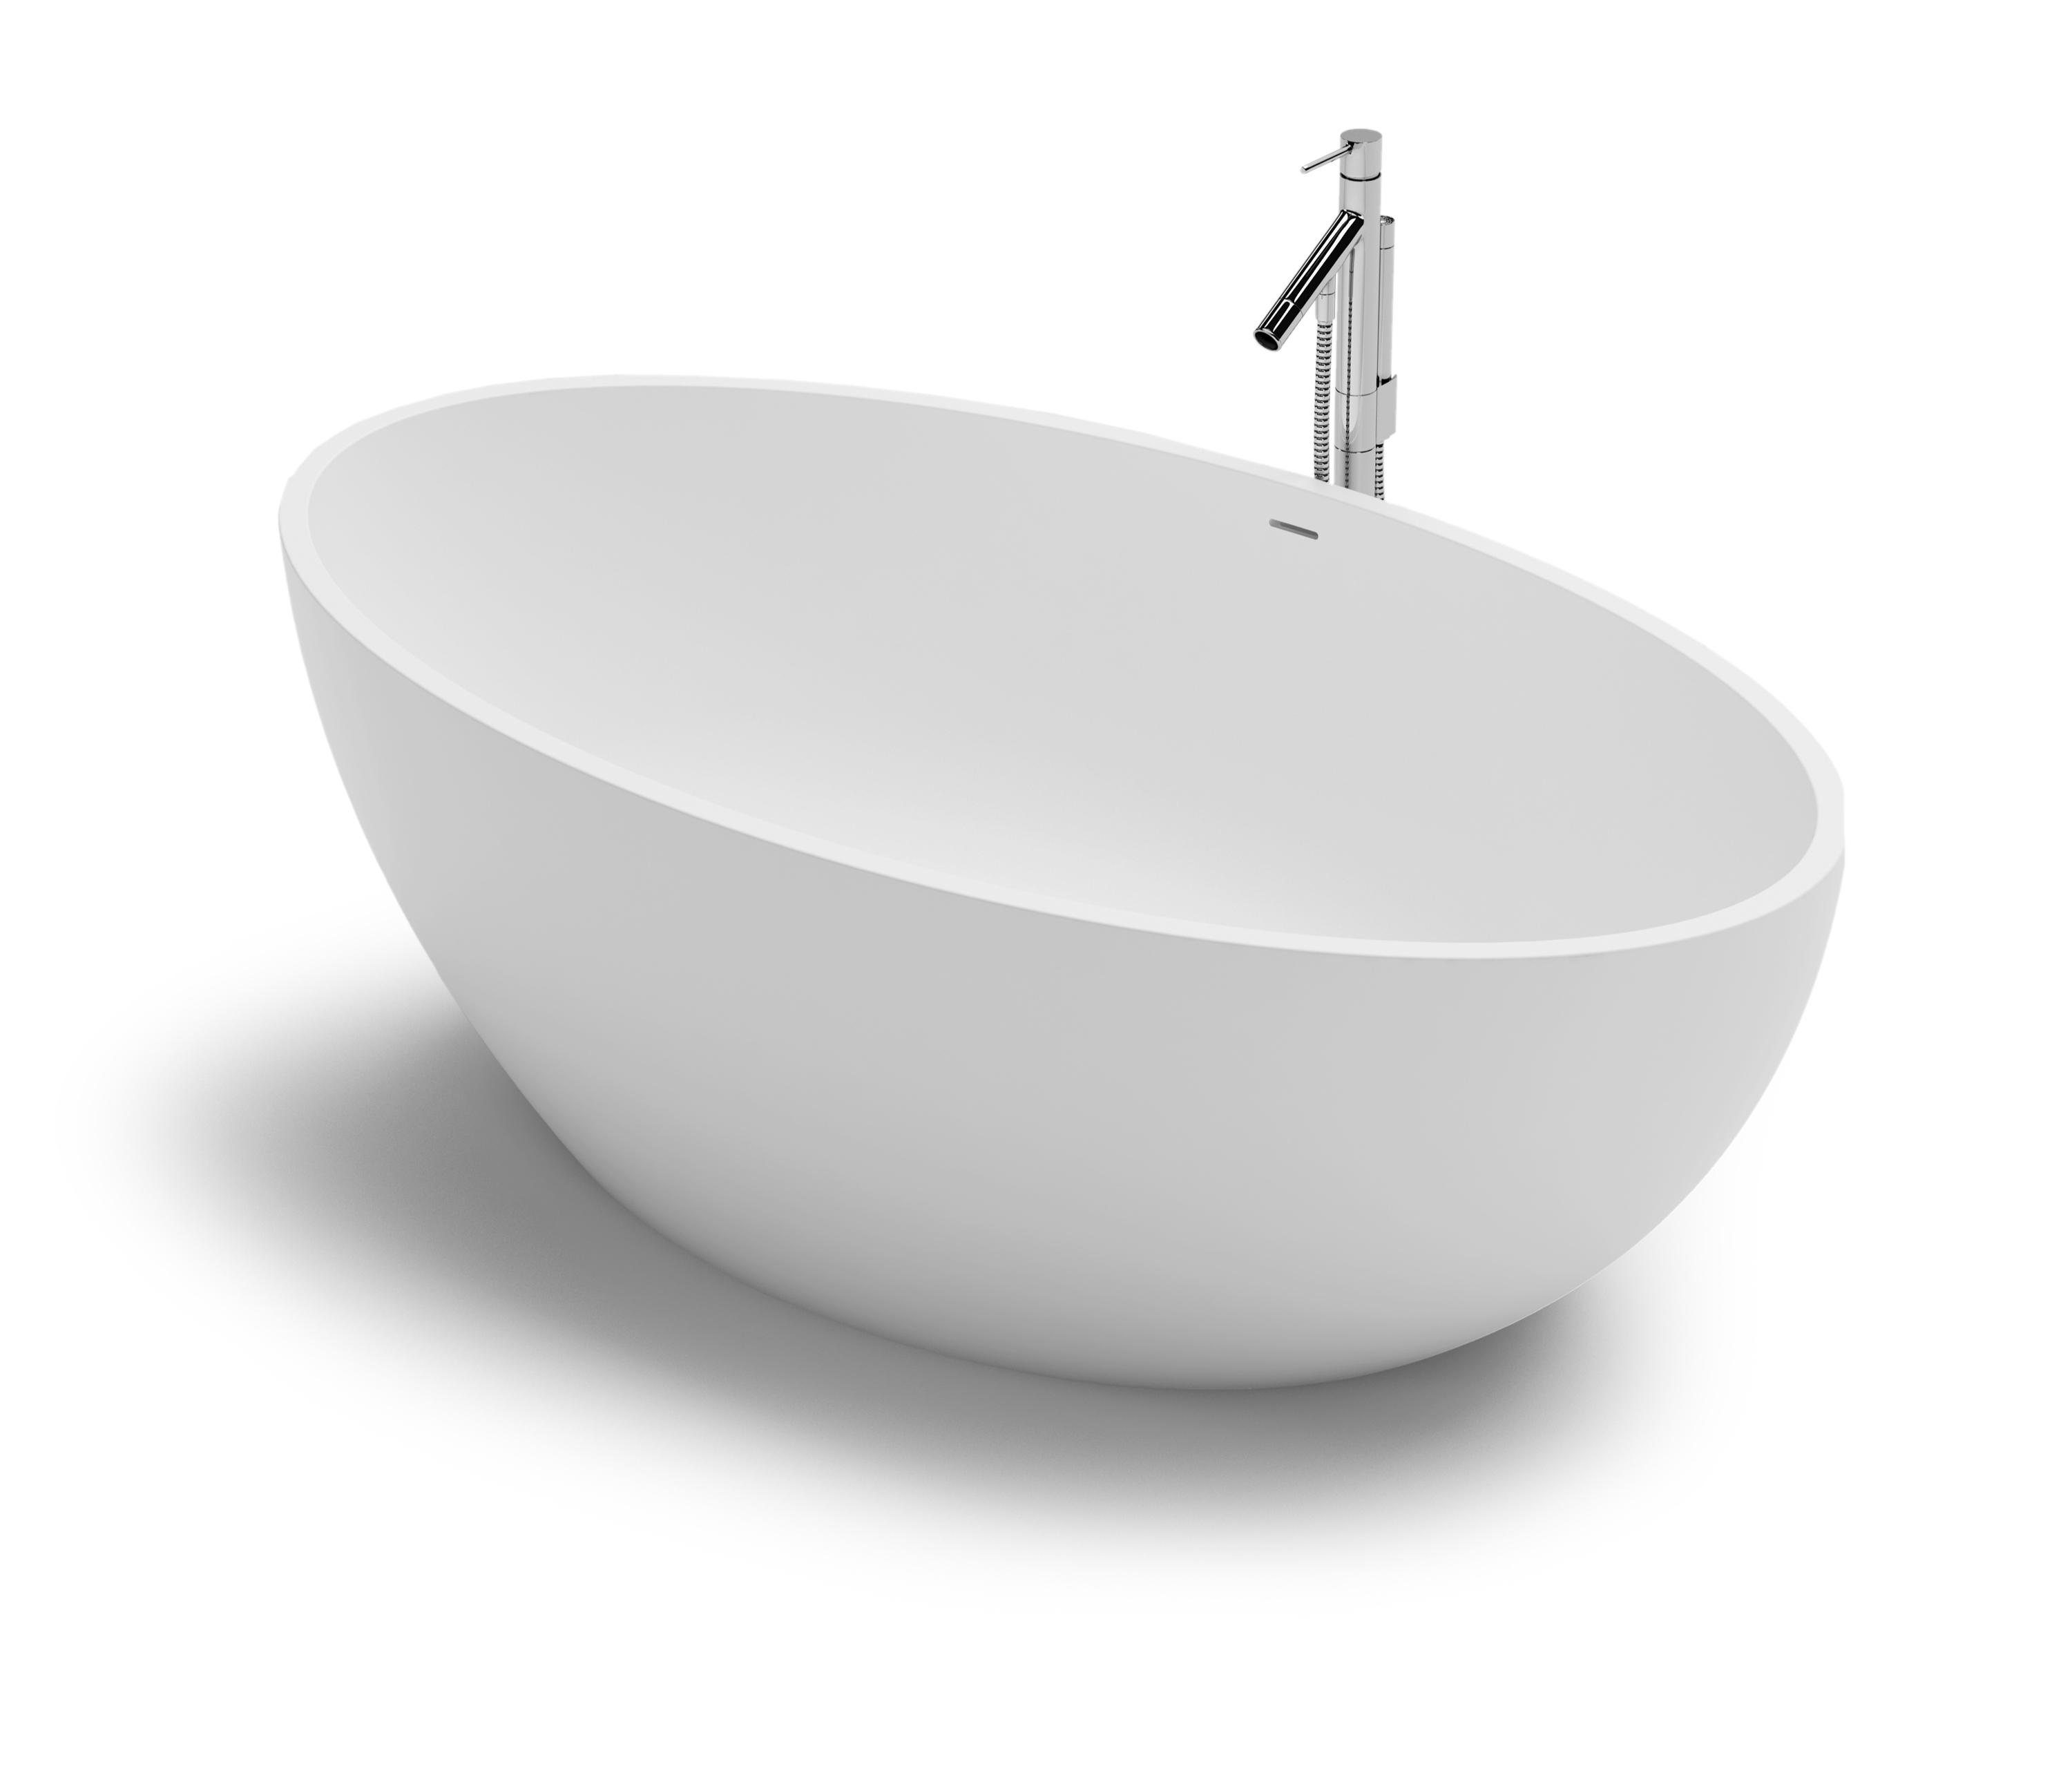 FREE-STANDING BATHS - High quality designer FREE-STANDING BATHS ...